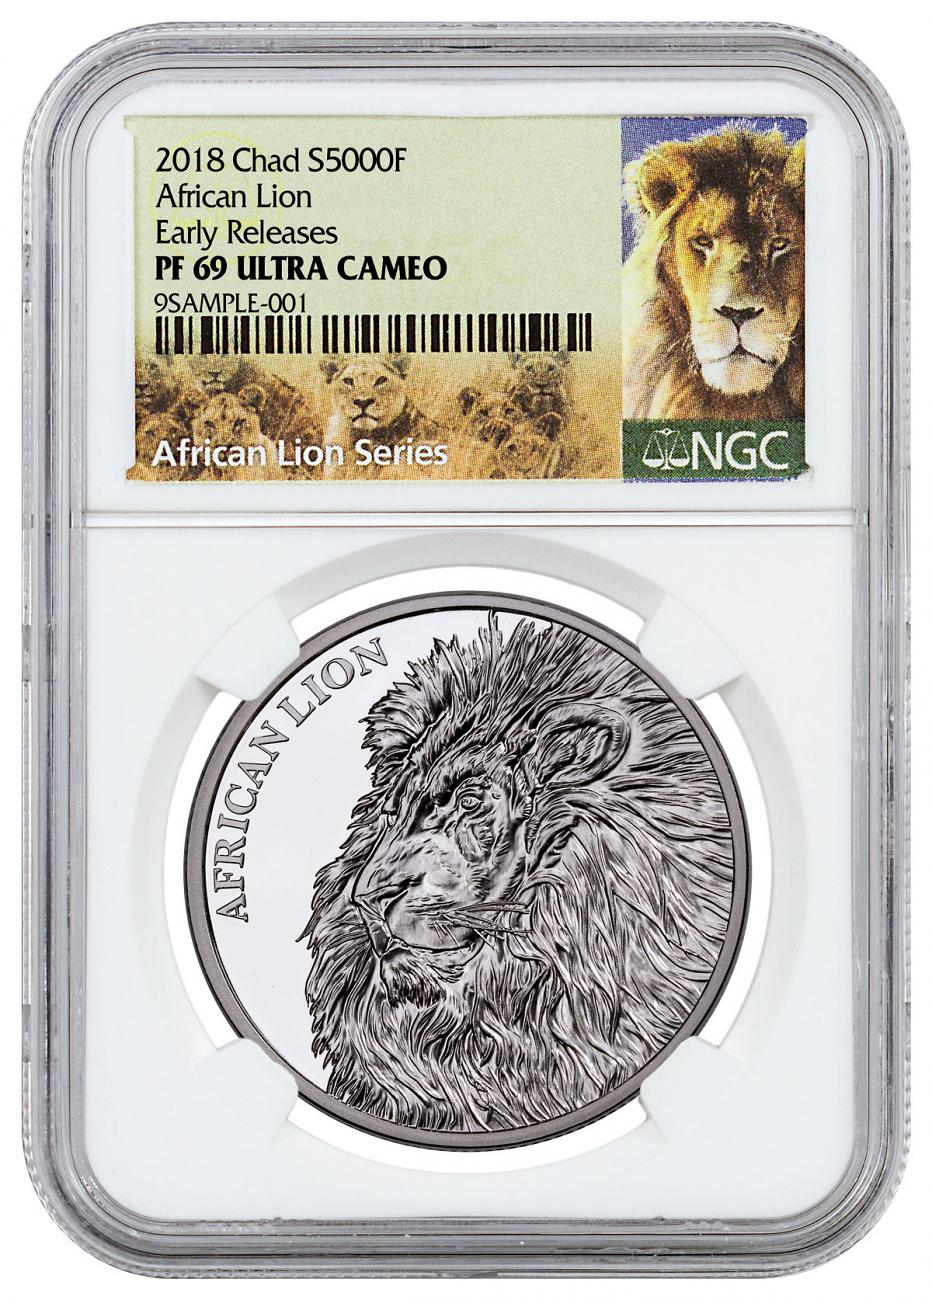 2018 Republic of Chad African Lion 1 oz Silver Proof Fr5,000 Coin NGC PF69 UC ER Exclusive Lion Label